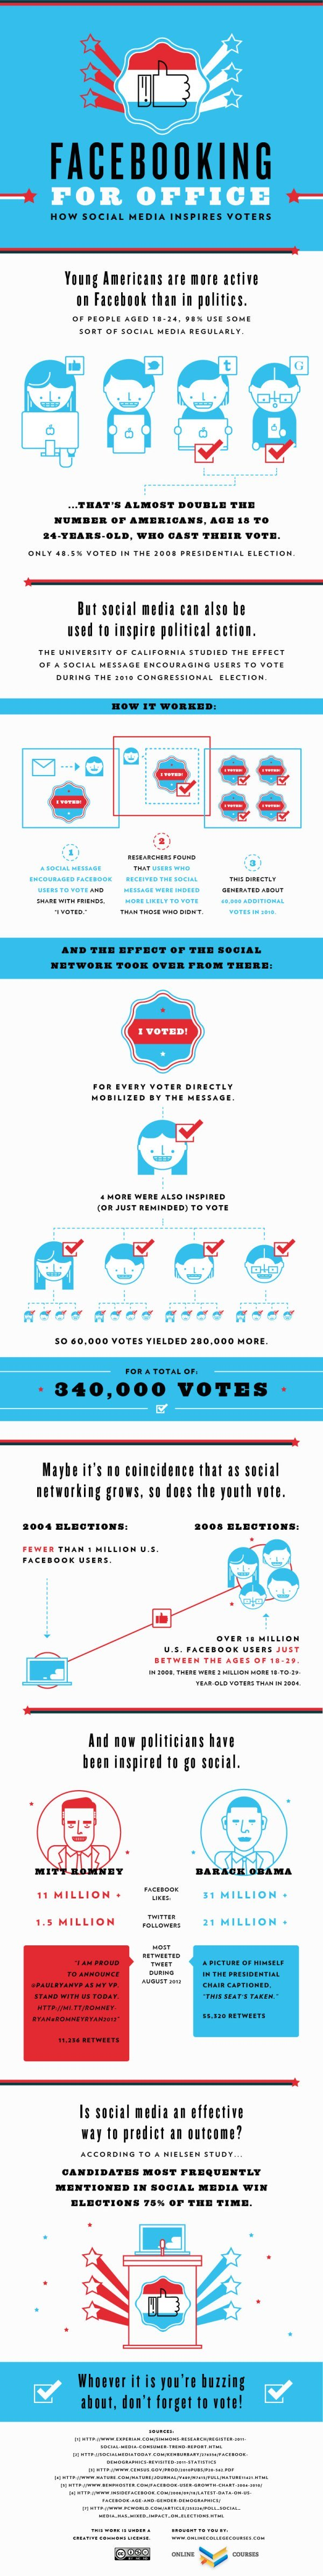 Facebooking for Office Infographic